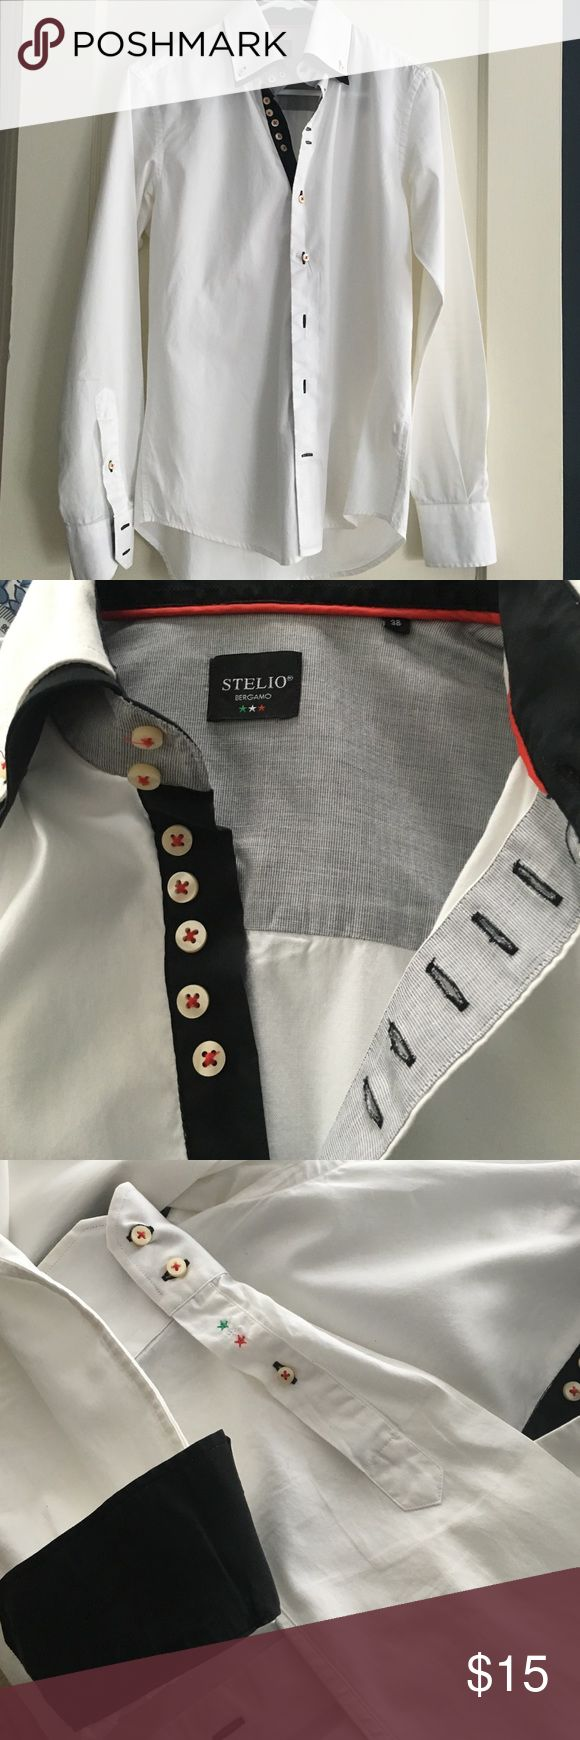 Continental Italian shirt Very unique well made and in great shape. continental shirt from Bergamo Italy near Milan.  Size 38 European. Crisp white cotton with black trim. Extra buttons. Stelio Bergamo Shirts